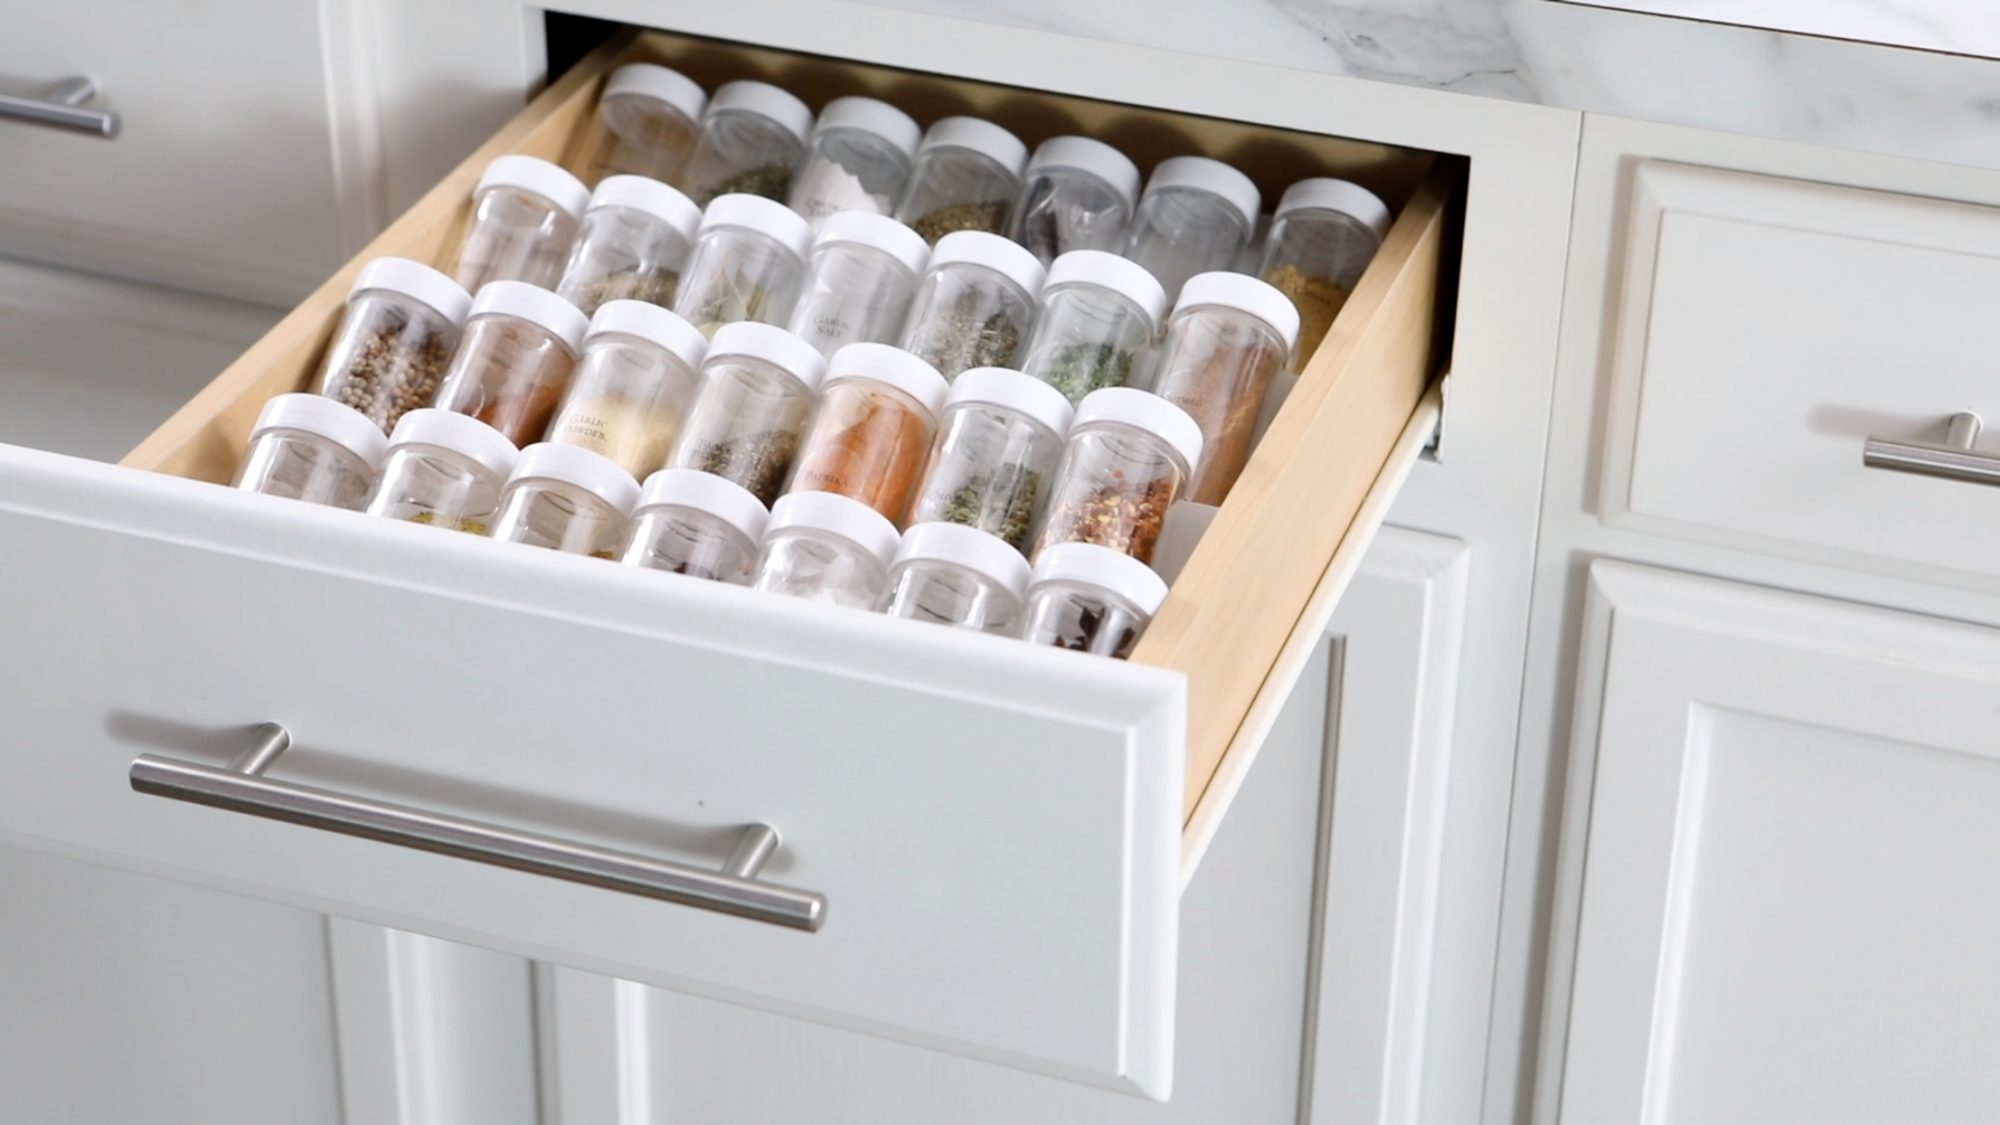 diy spice rack in drawer with spices